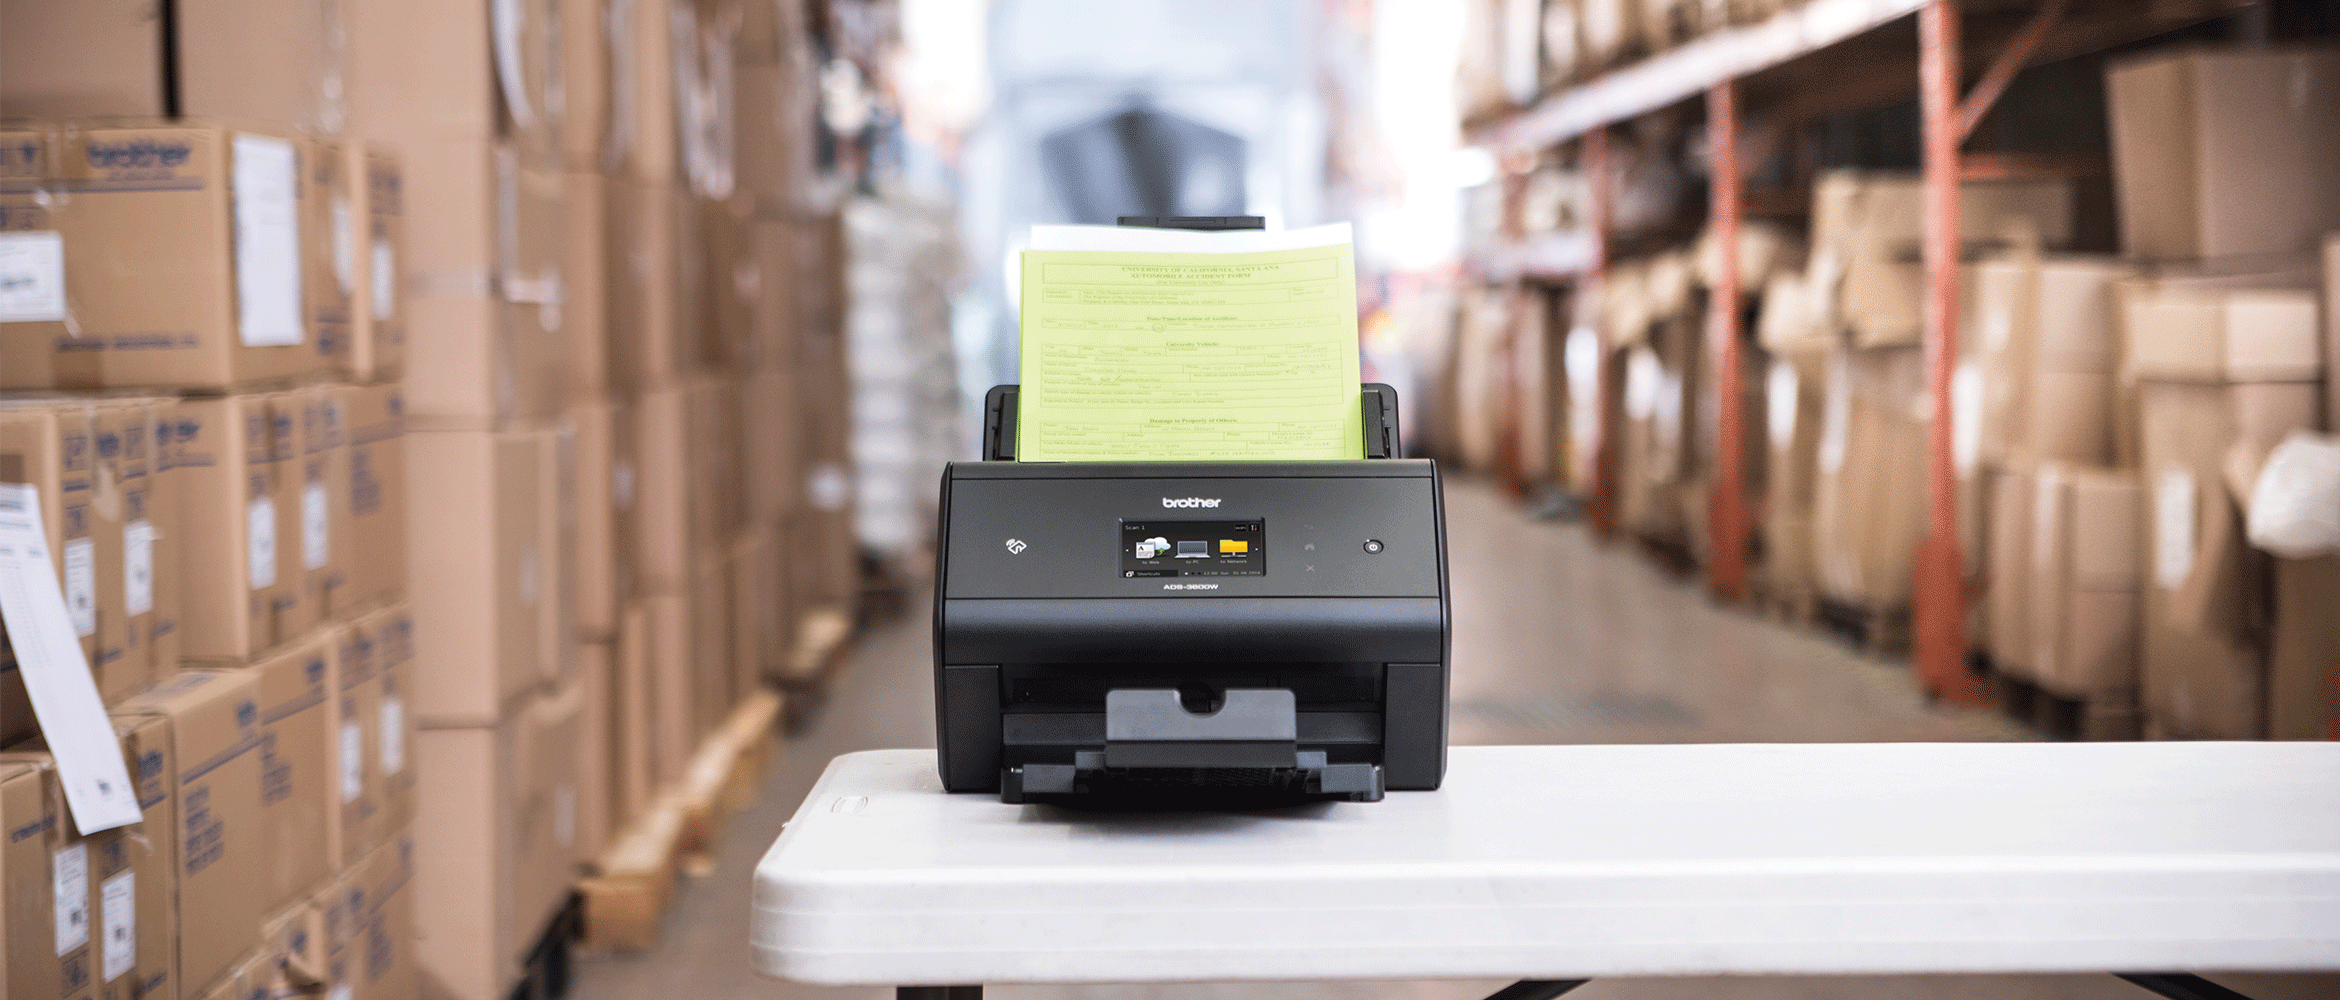 ADS-3600W in warehouse envrionment